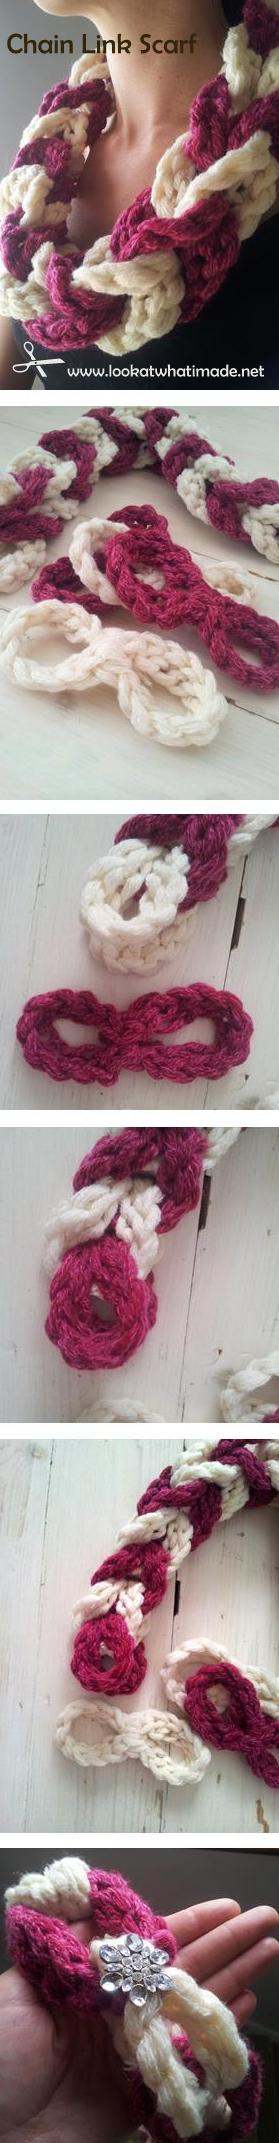 Crochet Chain Link Scarf